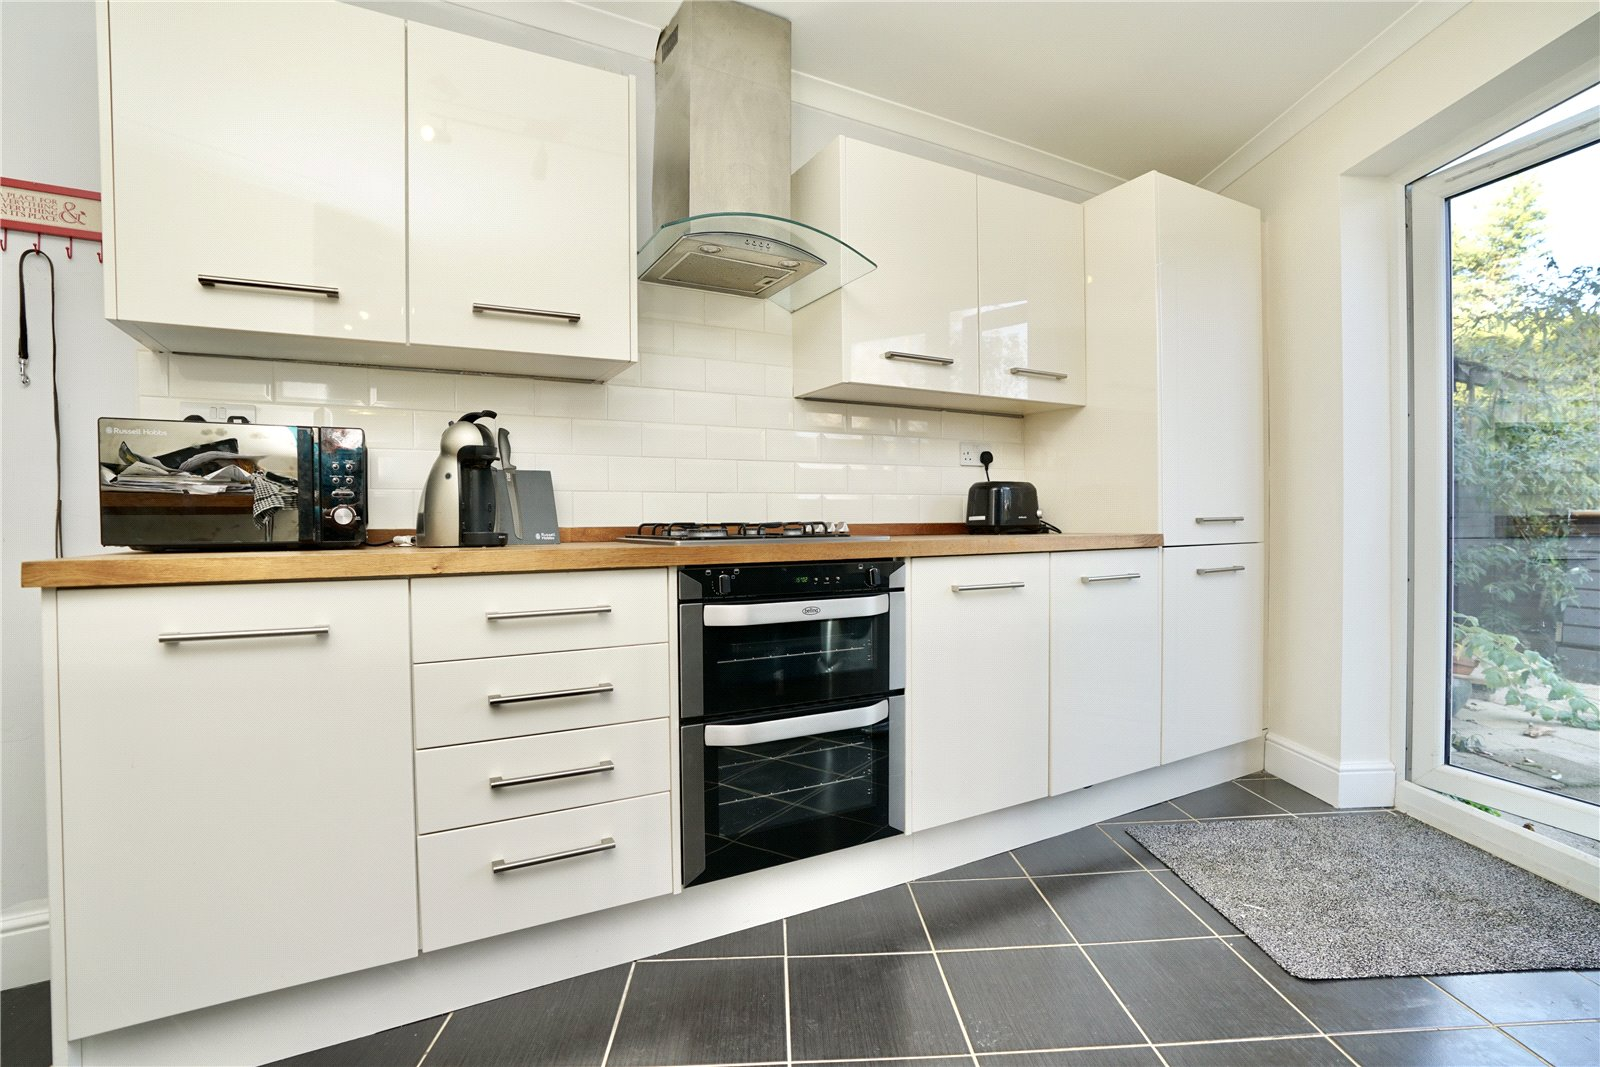 4 bed house for sale in Codrington Court, Eaton Socon 5